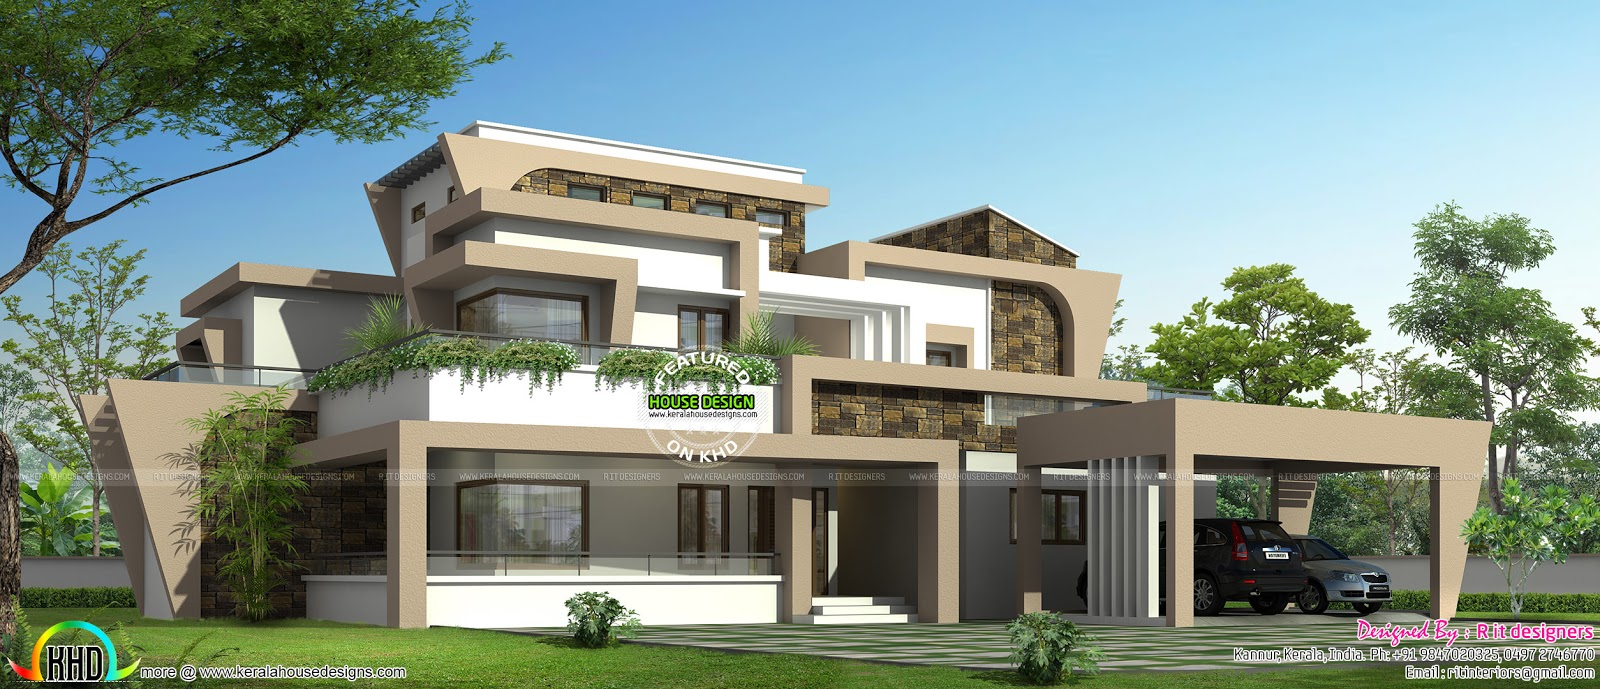 Unique modern home design in kerala kerala home design and floor plans - Unique house design ...